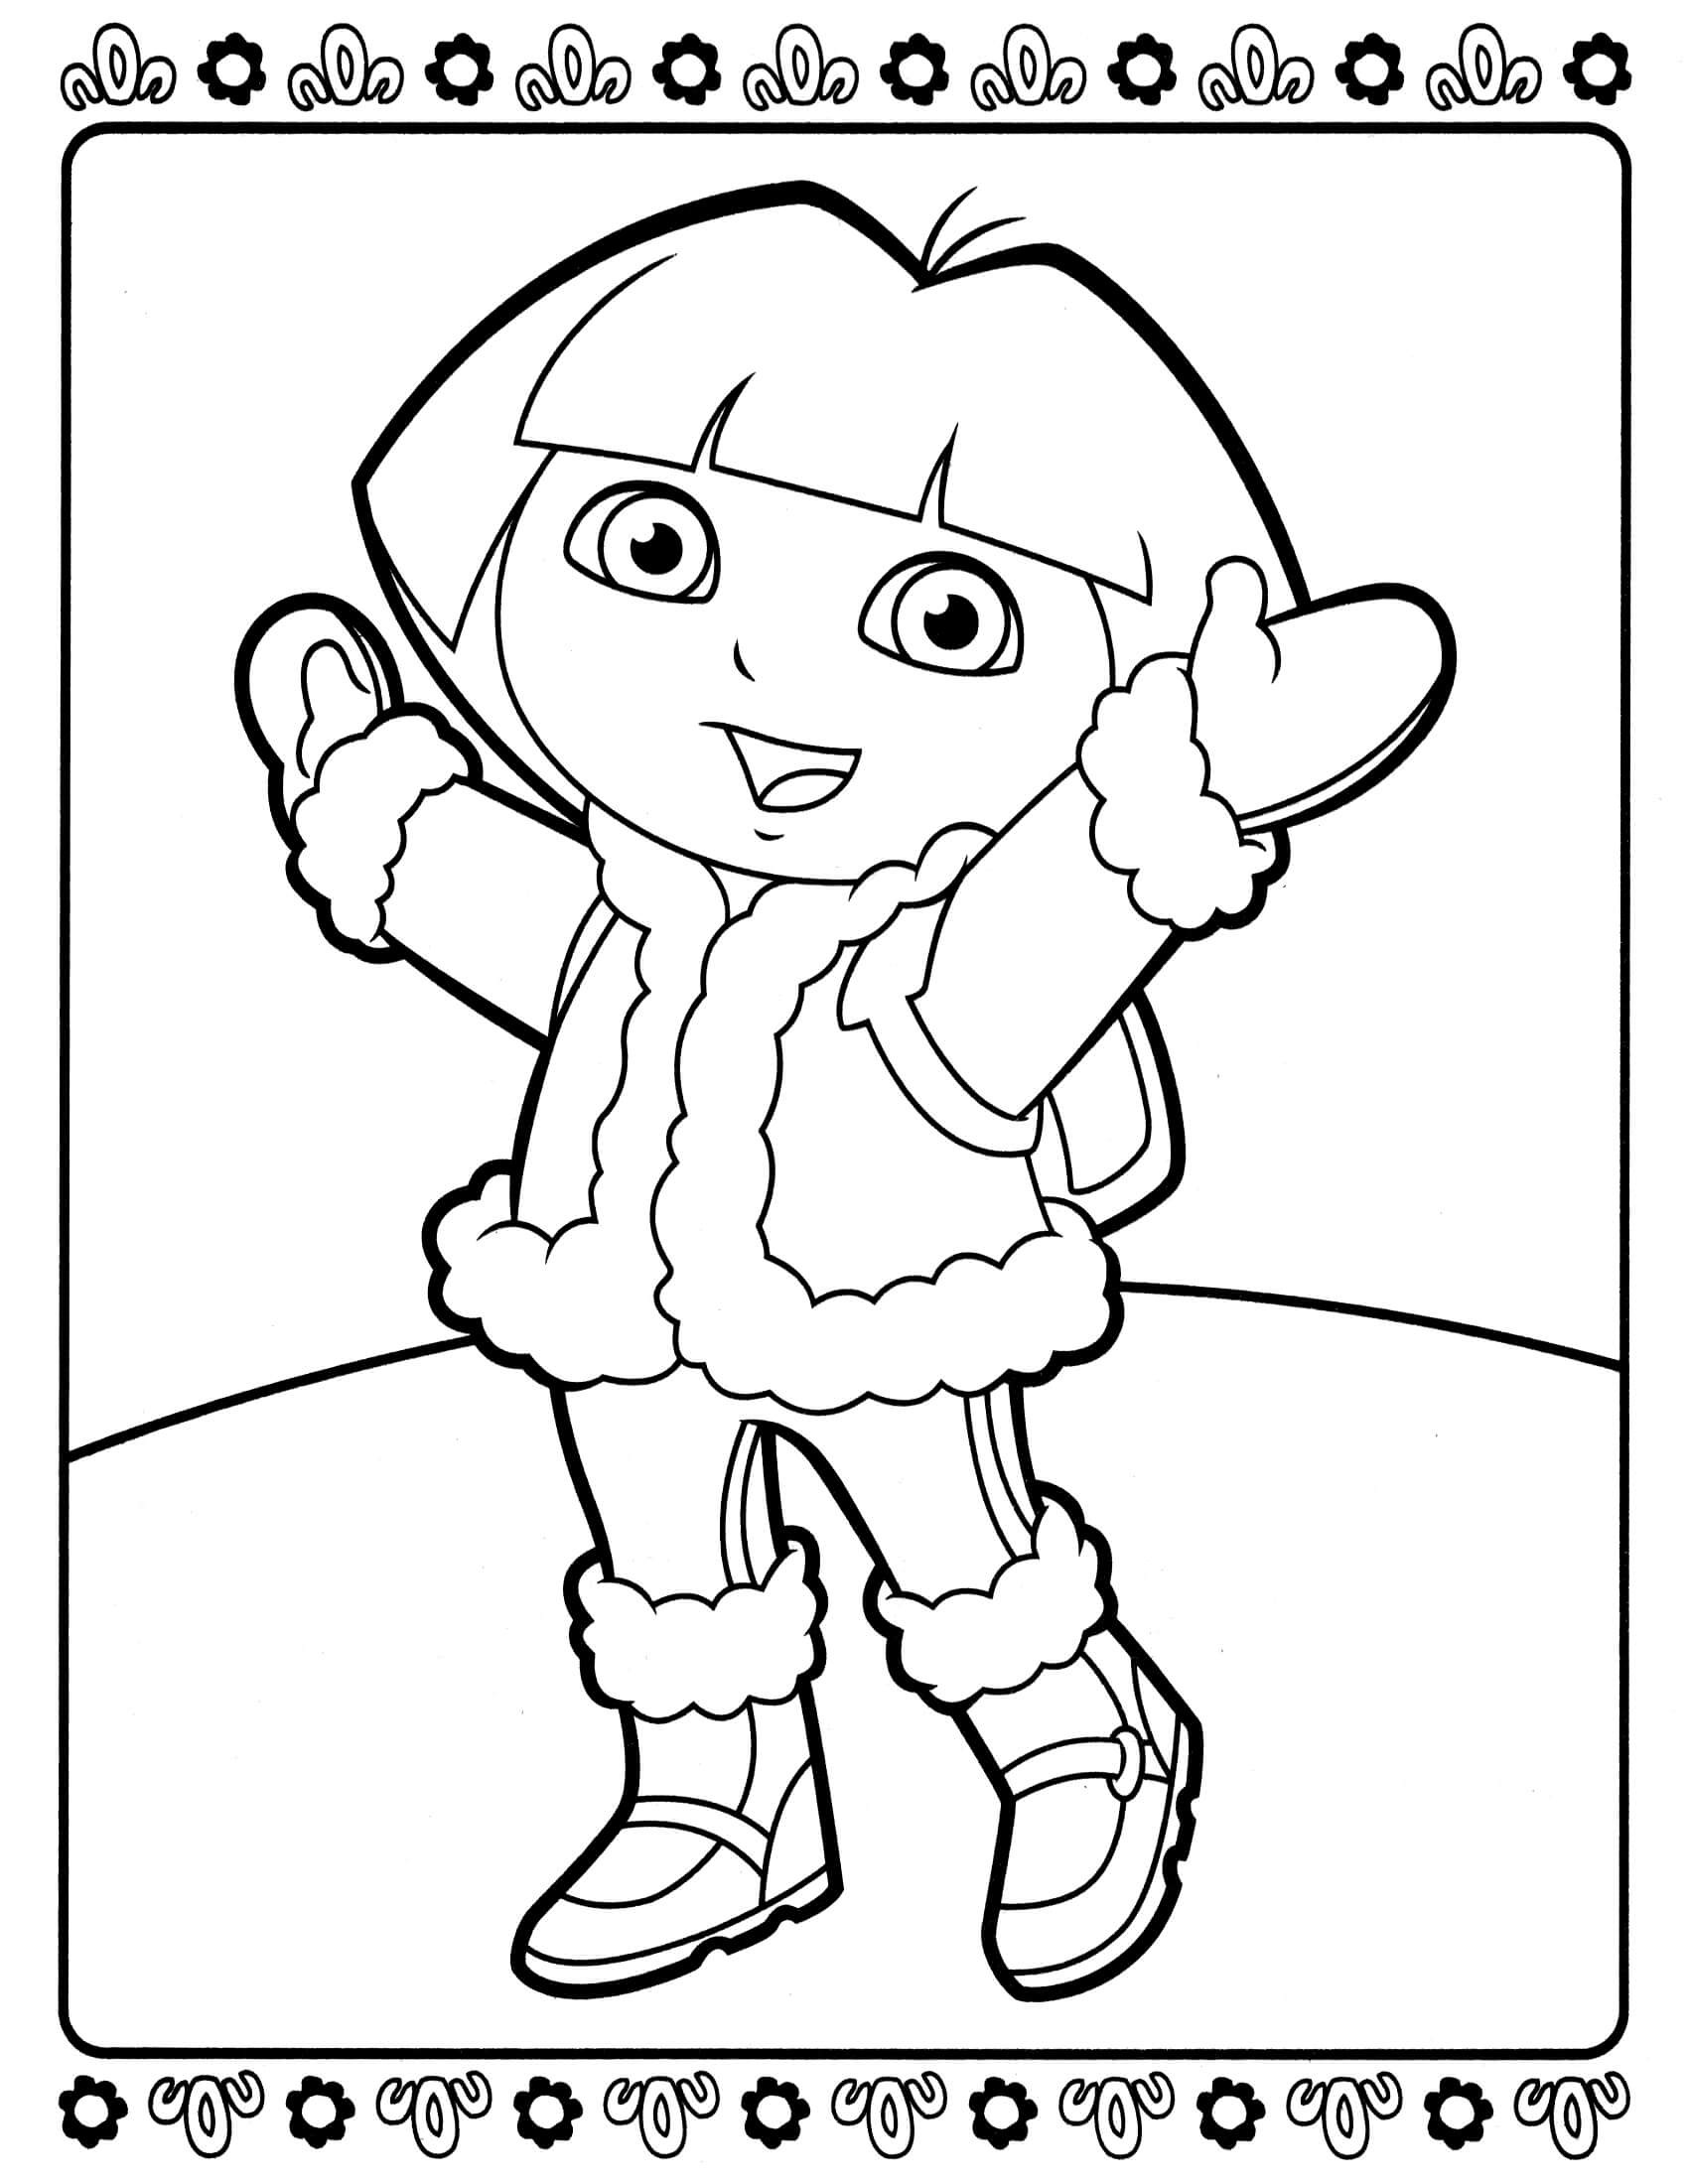 Dora Coloring Pages For Girls  Dora 2 – Coloringcolor